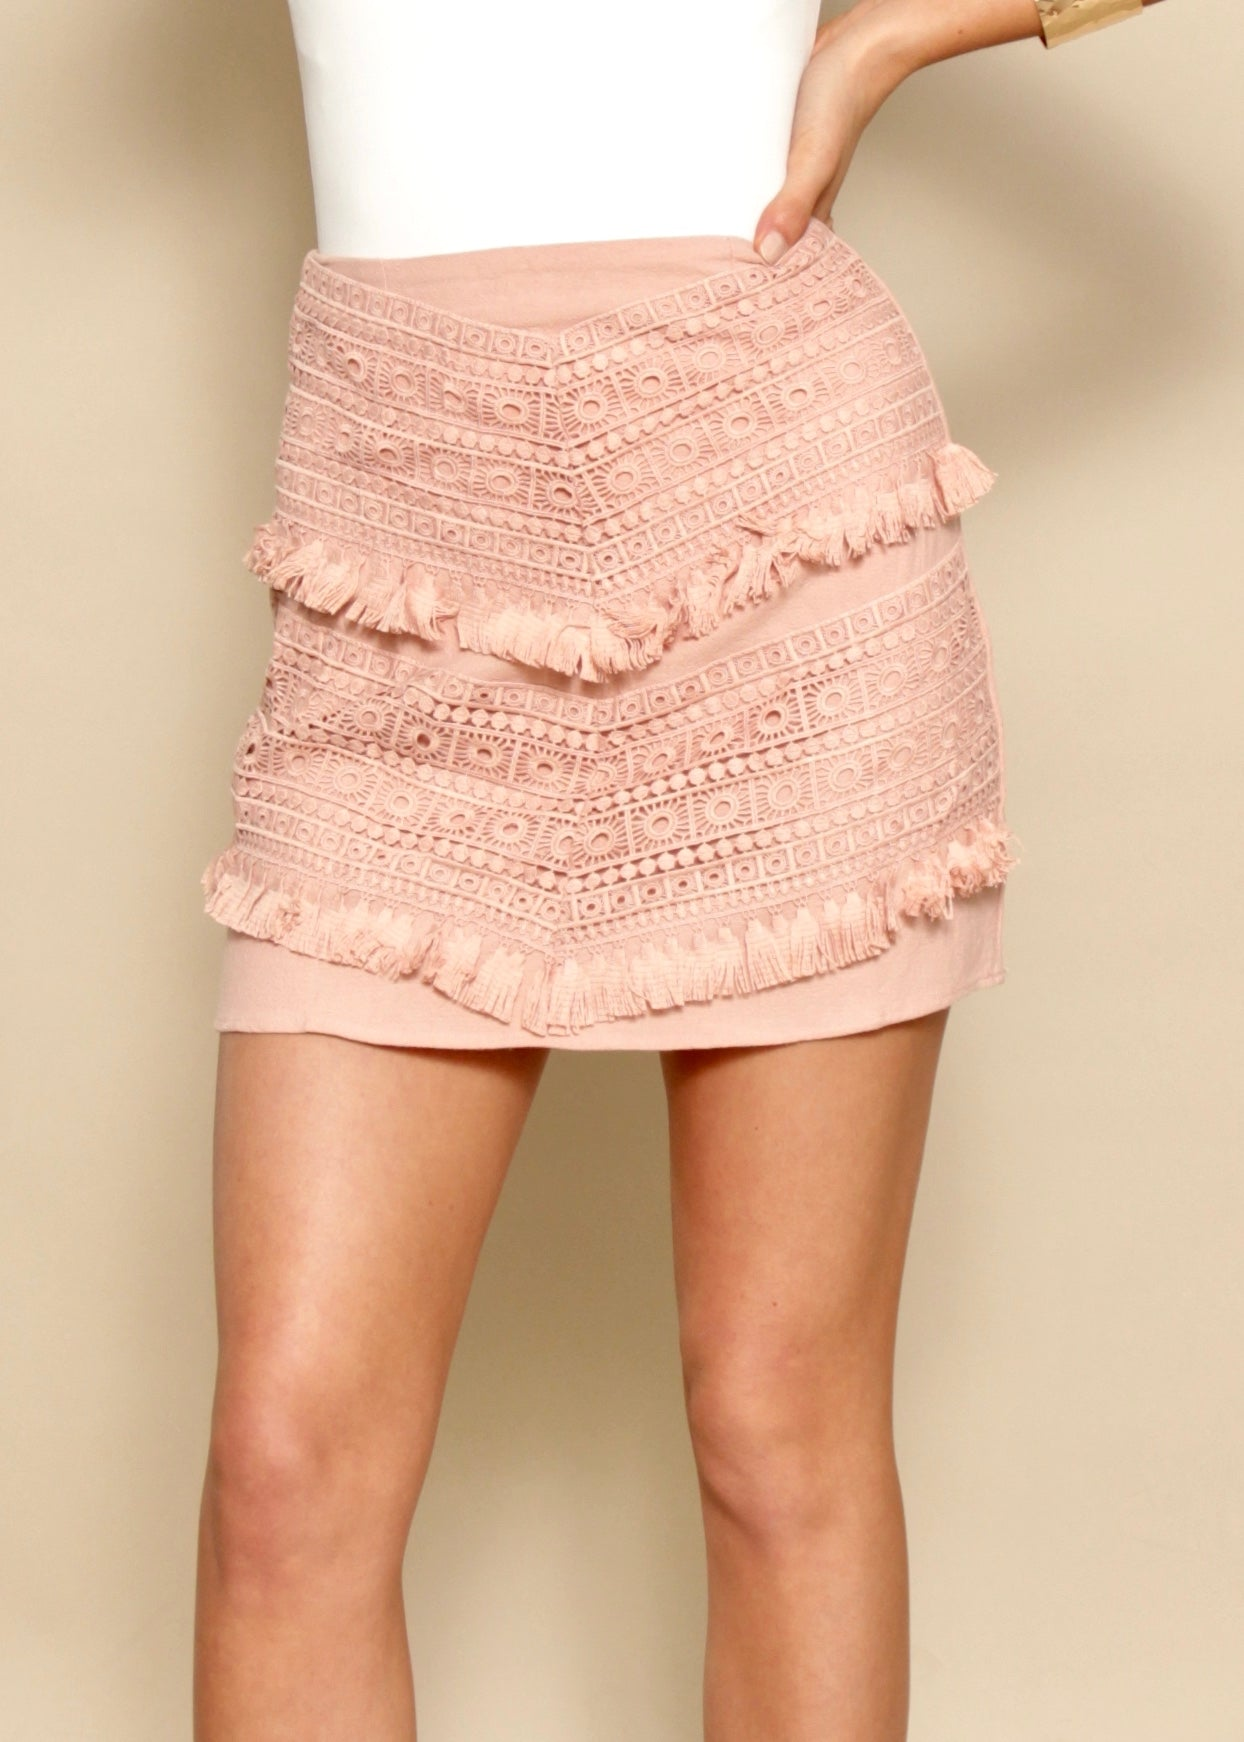 Dream Life Skirt - Blush